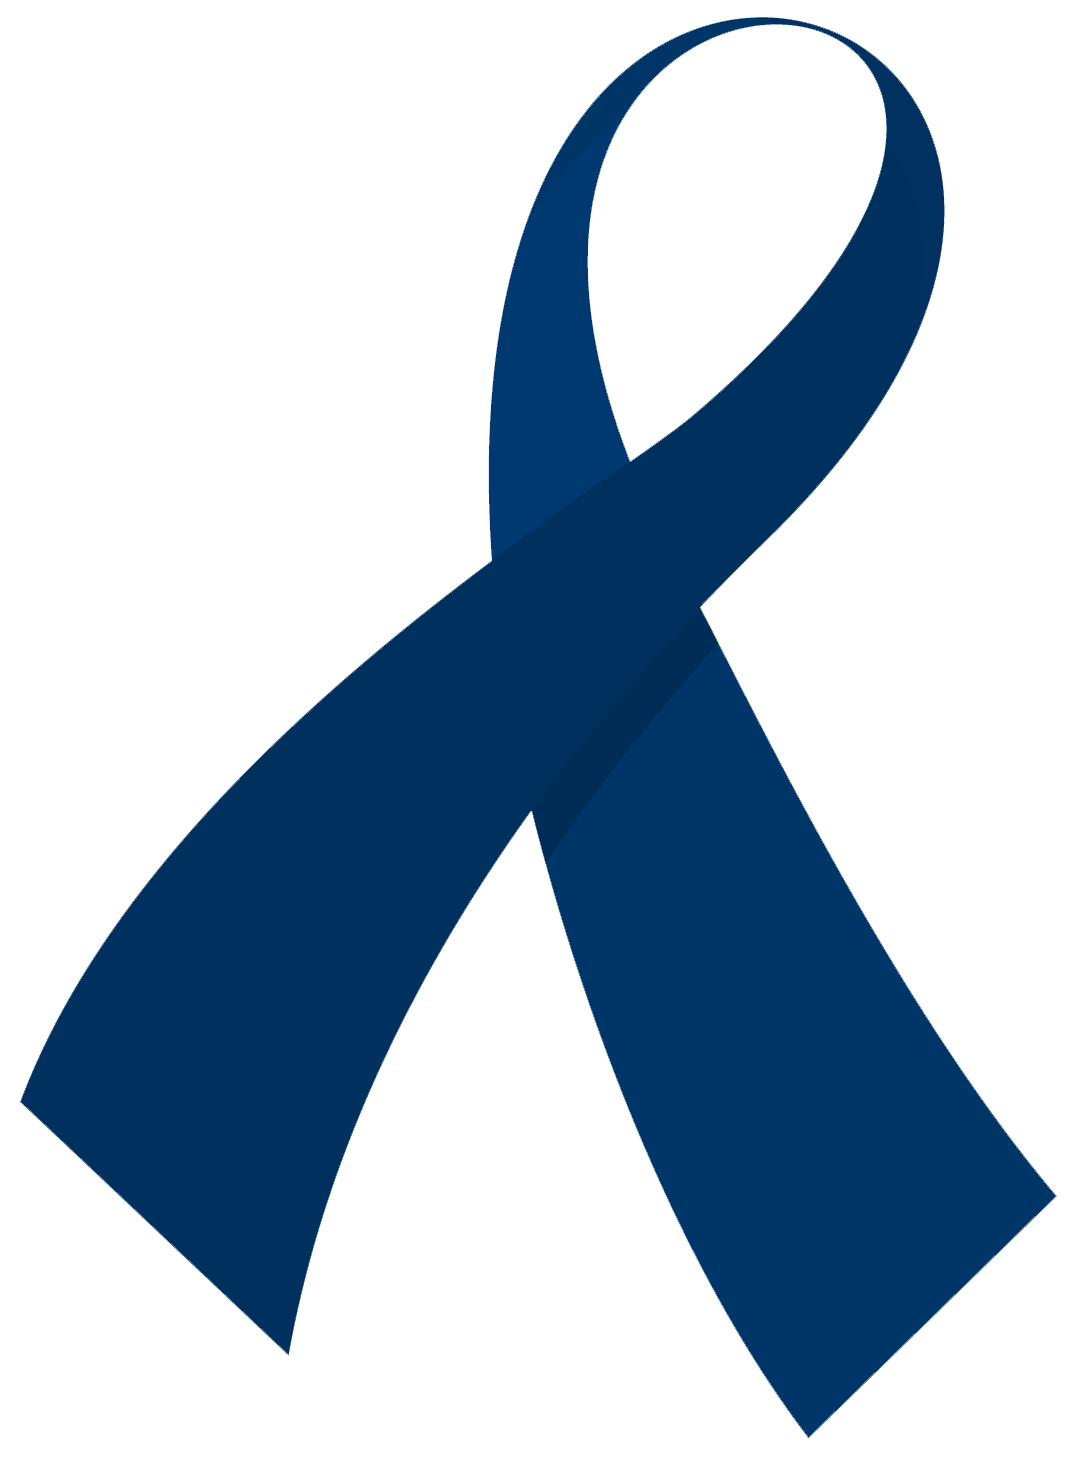 clipart free Cancer Ribbon Vector Clipart